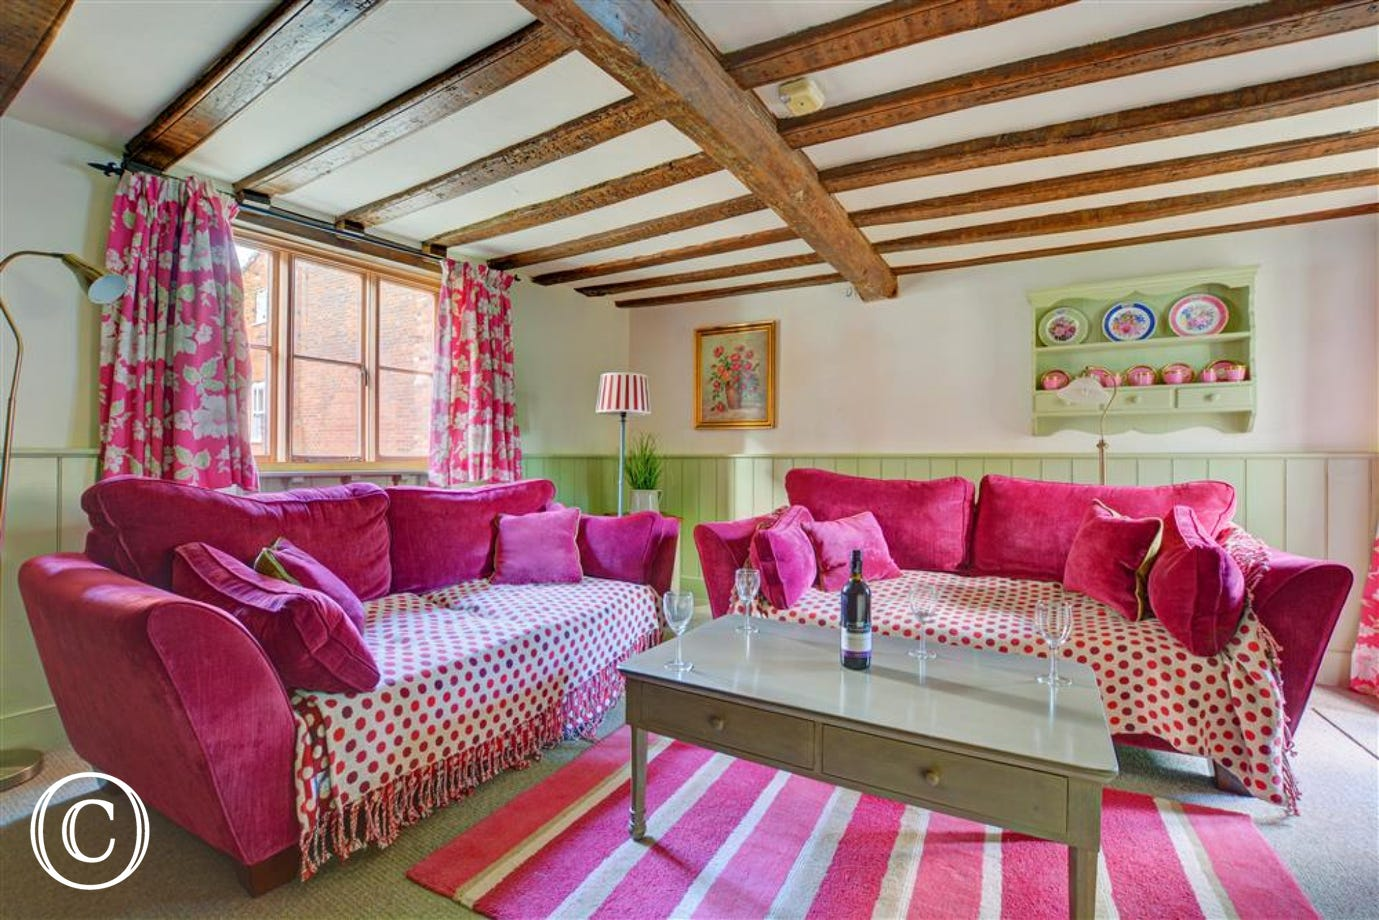 Lovely cottage living room, with a pretty colour scheme of natural, green and raspbery soft furnishings and comfortable seating.